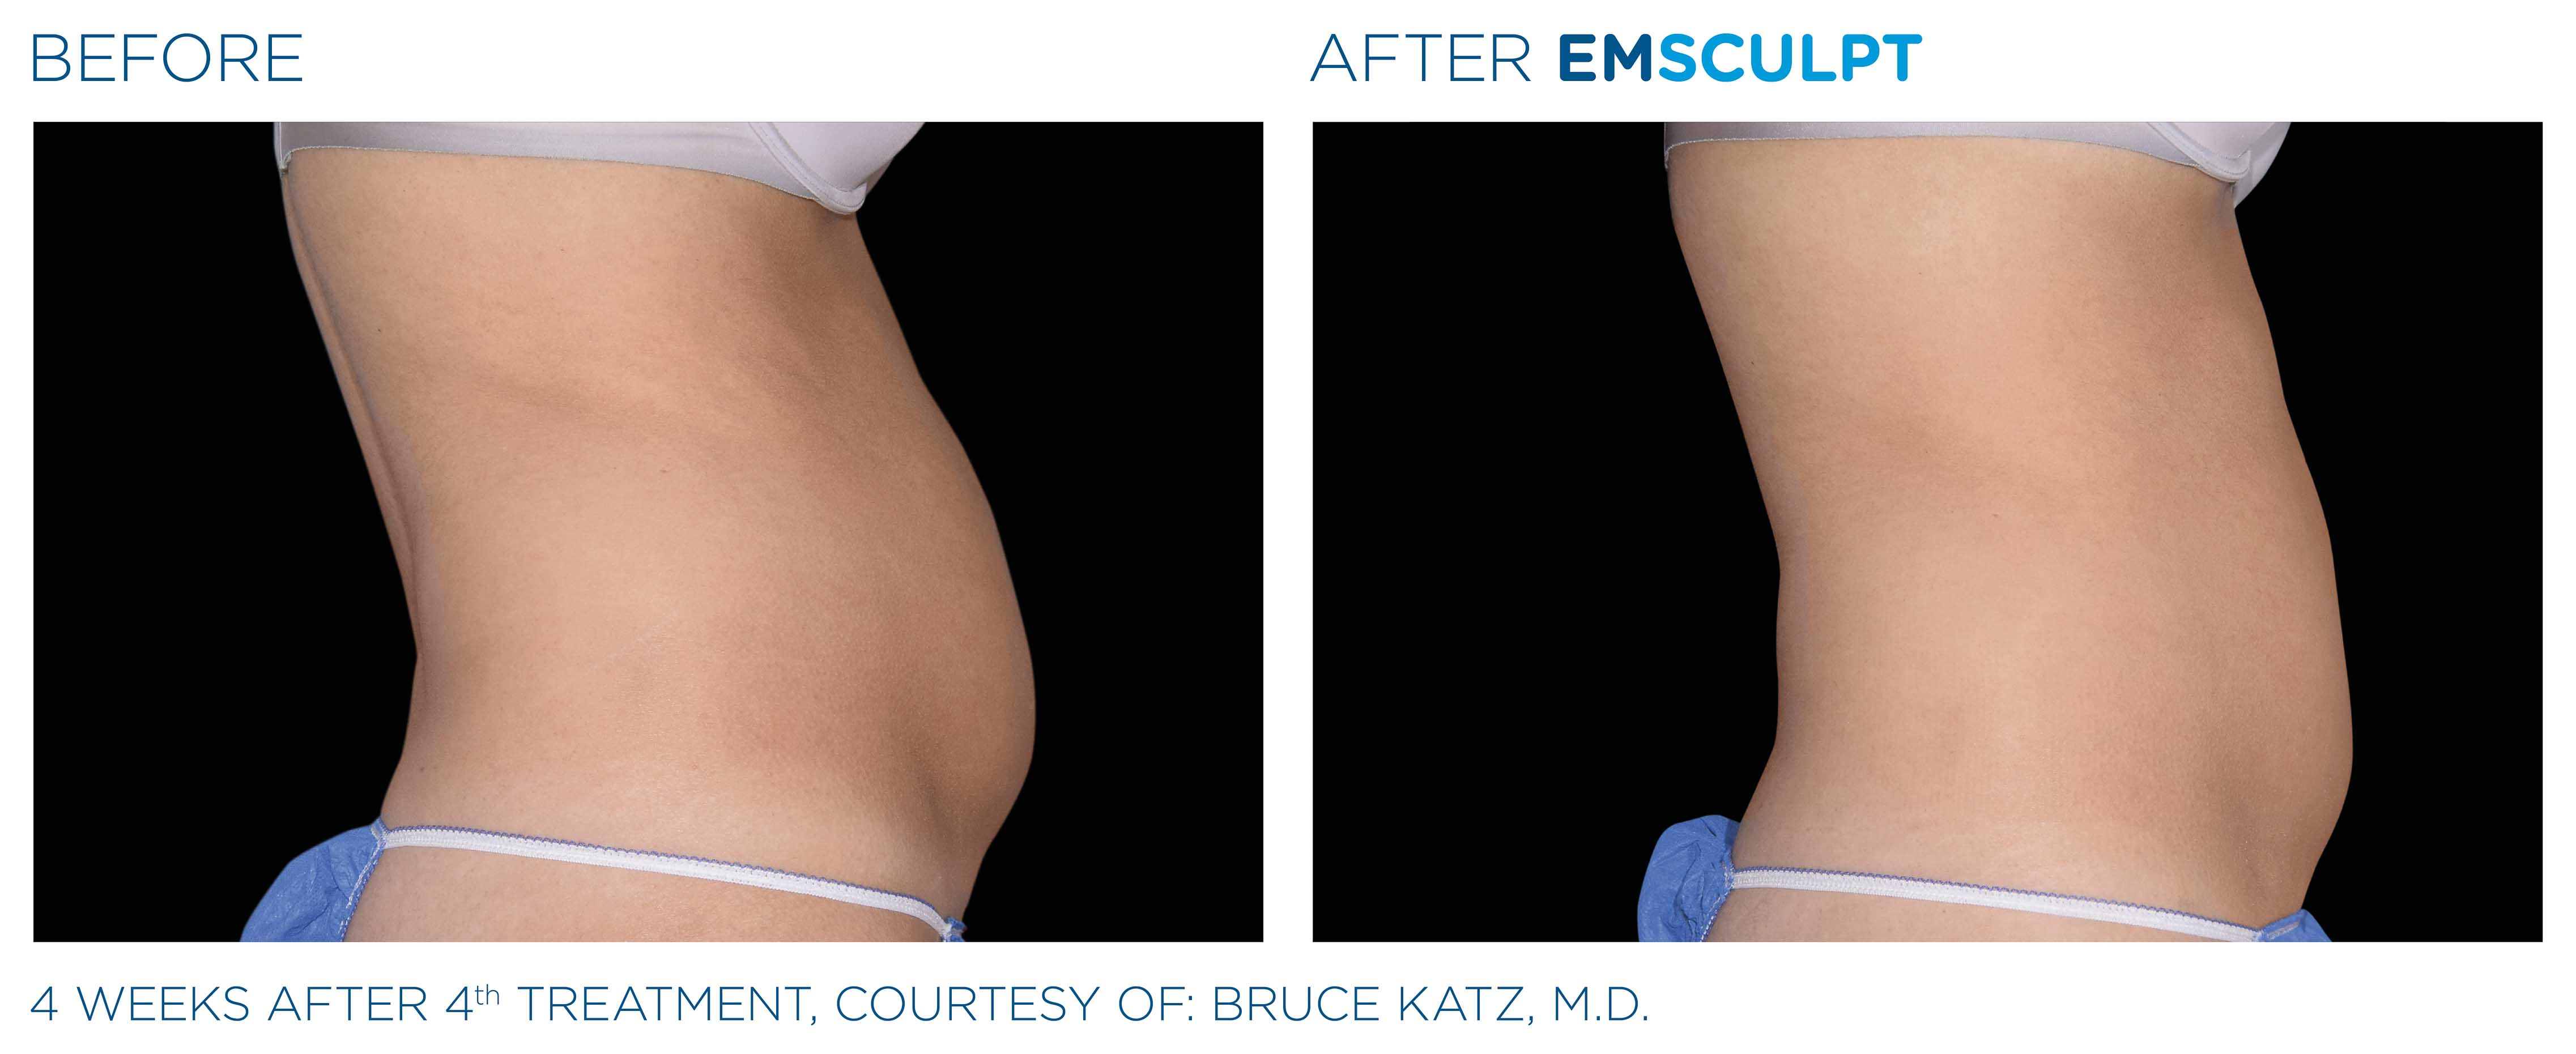 EmSculpt Canada | Muscle Building, Fat Burning Technology